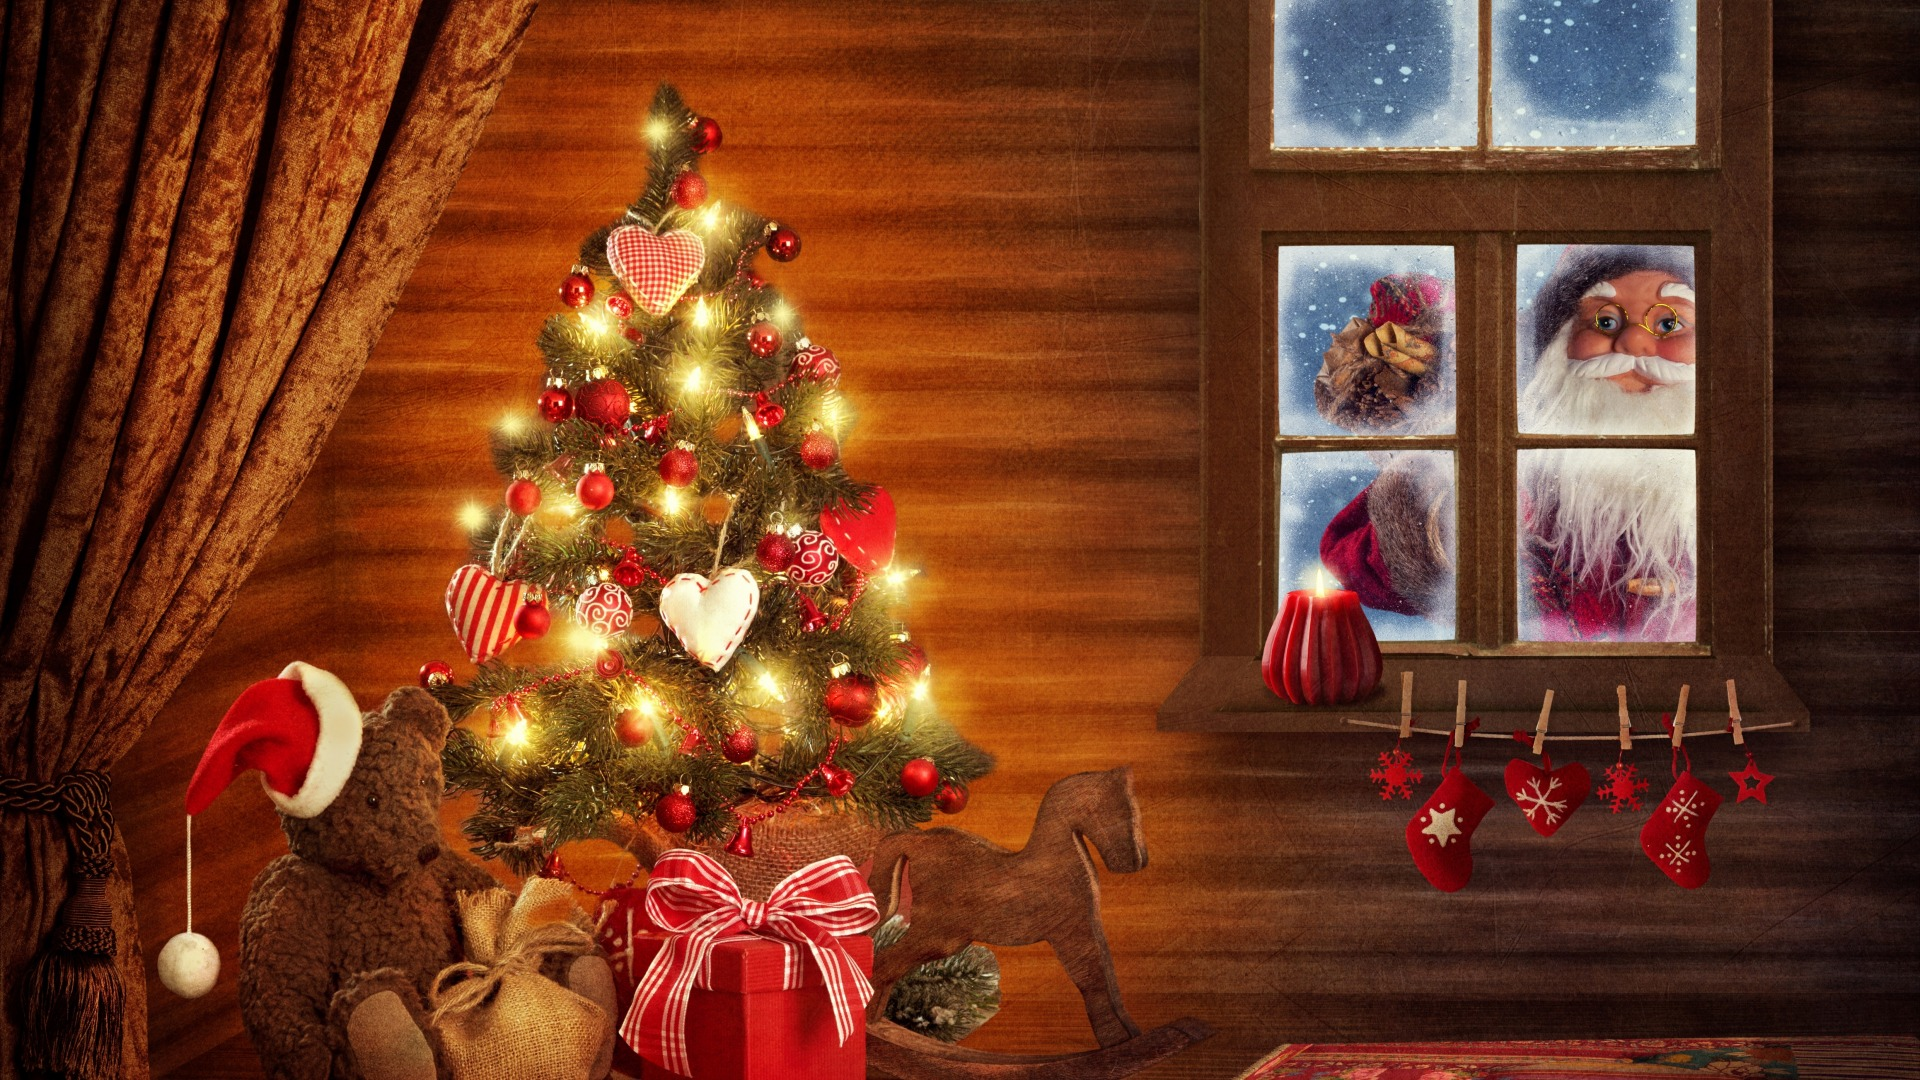 Download-decoration-Windows-tree-new-year-Christmas-hat-the-hood-bear-gifts-heart-wallpaper-wp3804812